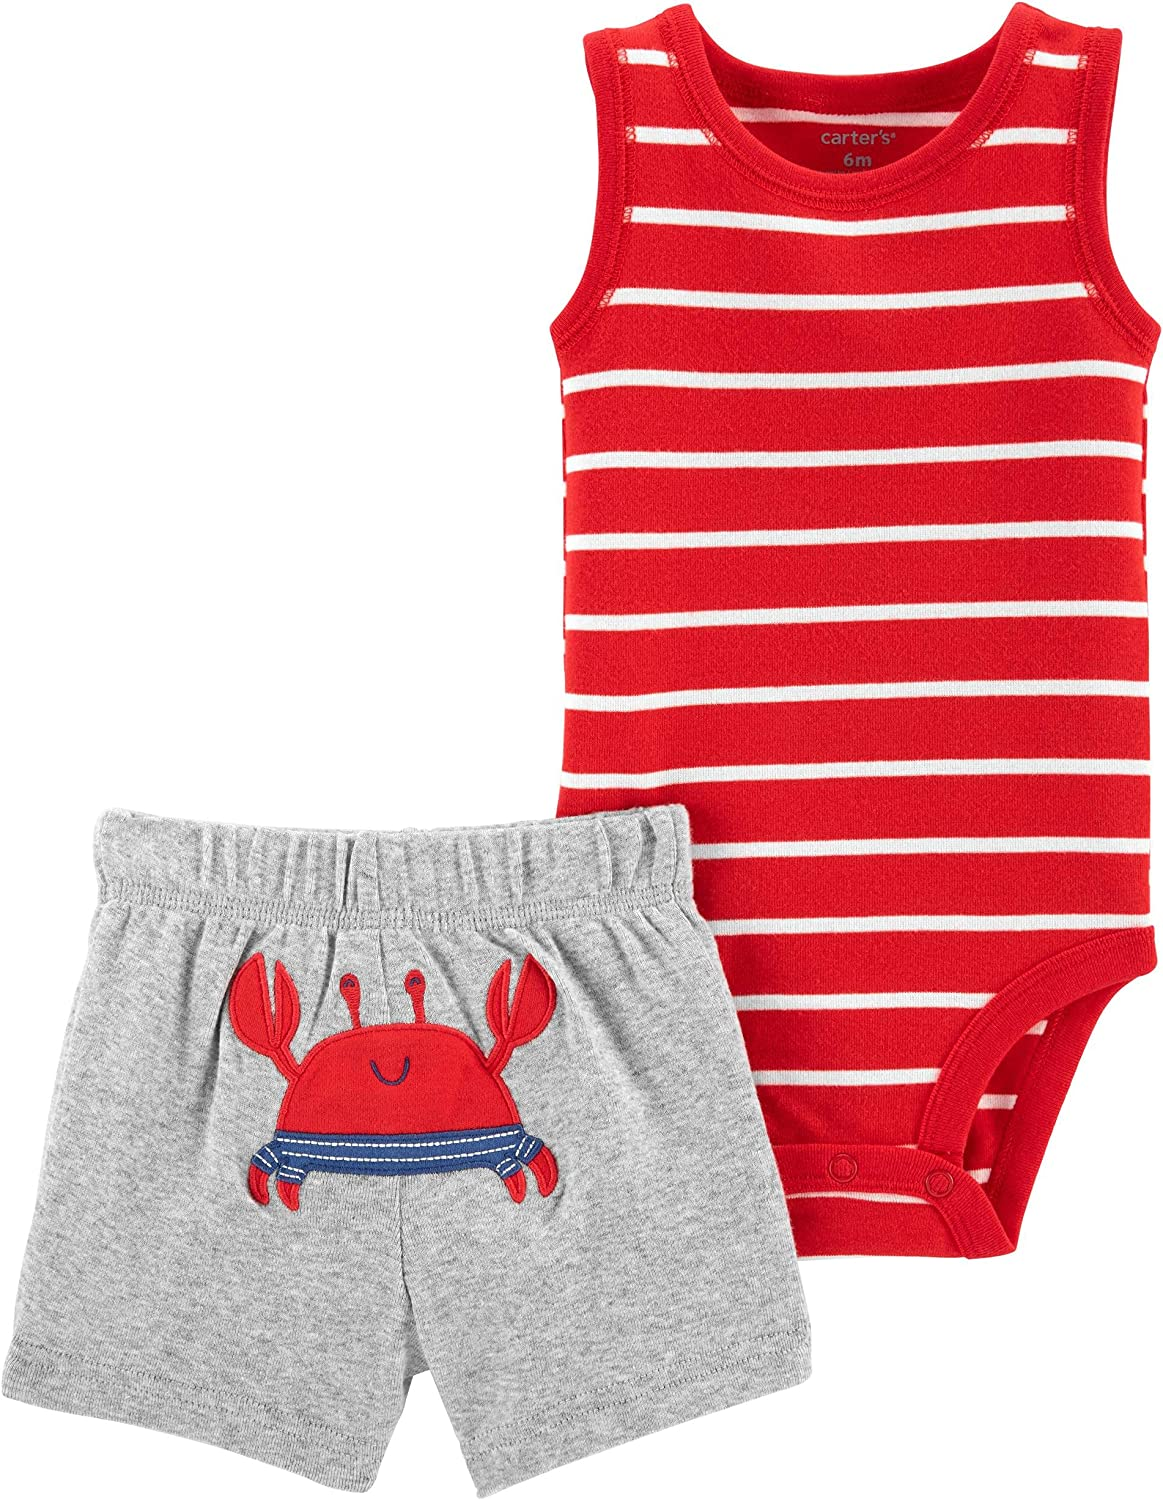 Carter's Baby Boy's Bodysuit and Shorts Set